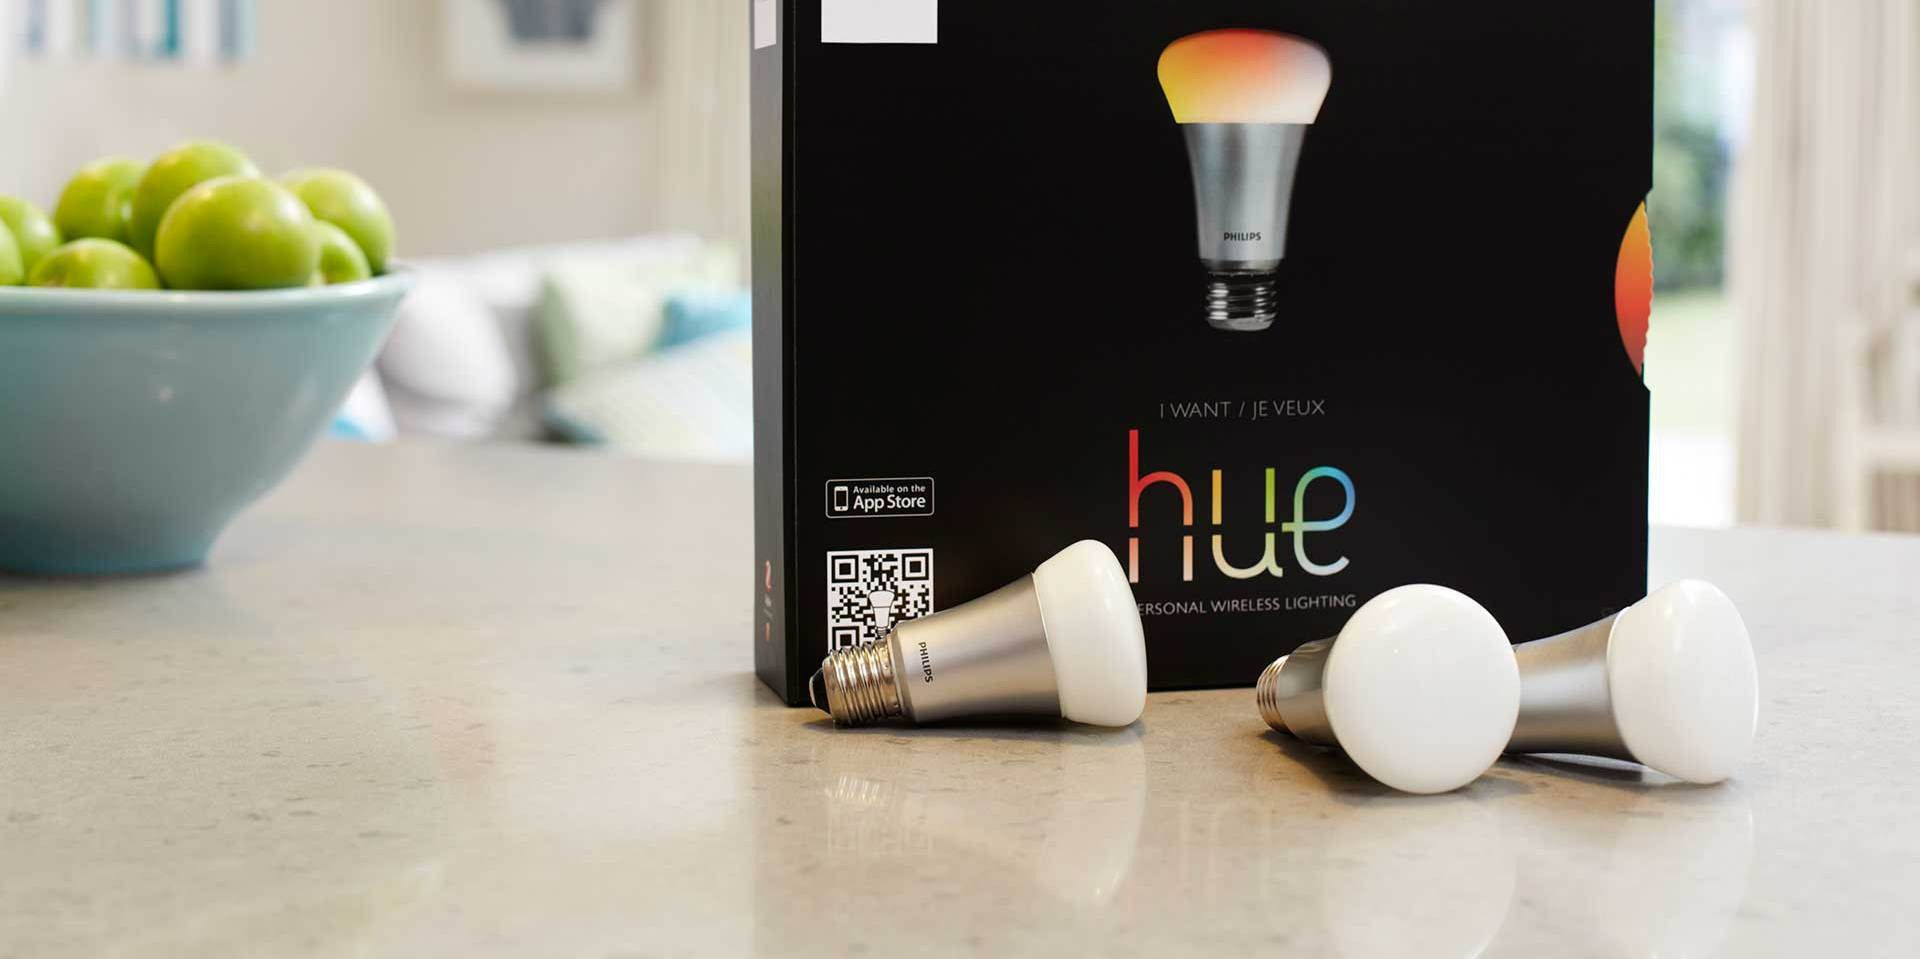 philips hue kompatibel mit homekit macwelt. Black Bedroom Furniture Sets. Home Design Ideas